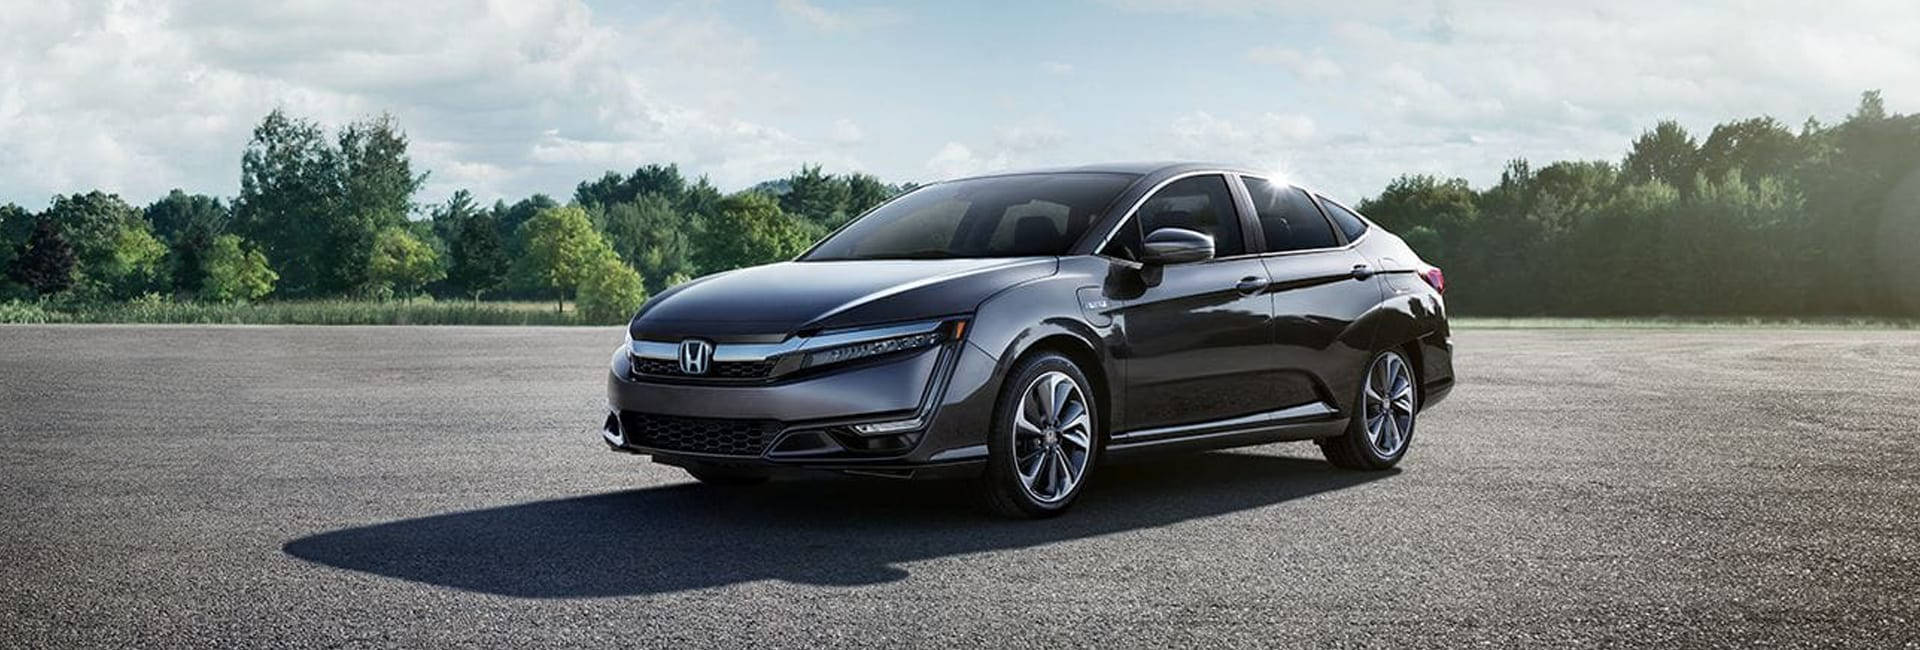 New 2020 Honda Clarity Plug-In Hybrid Exterior